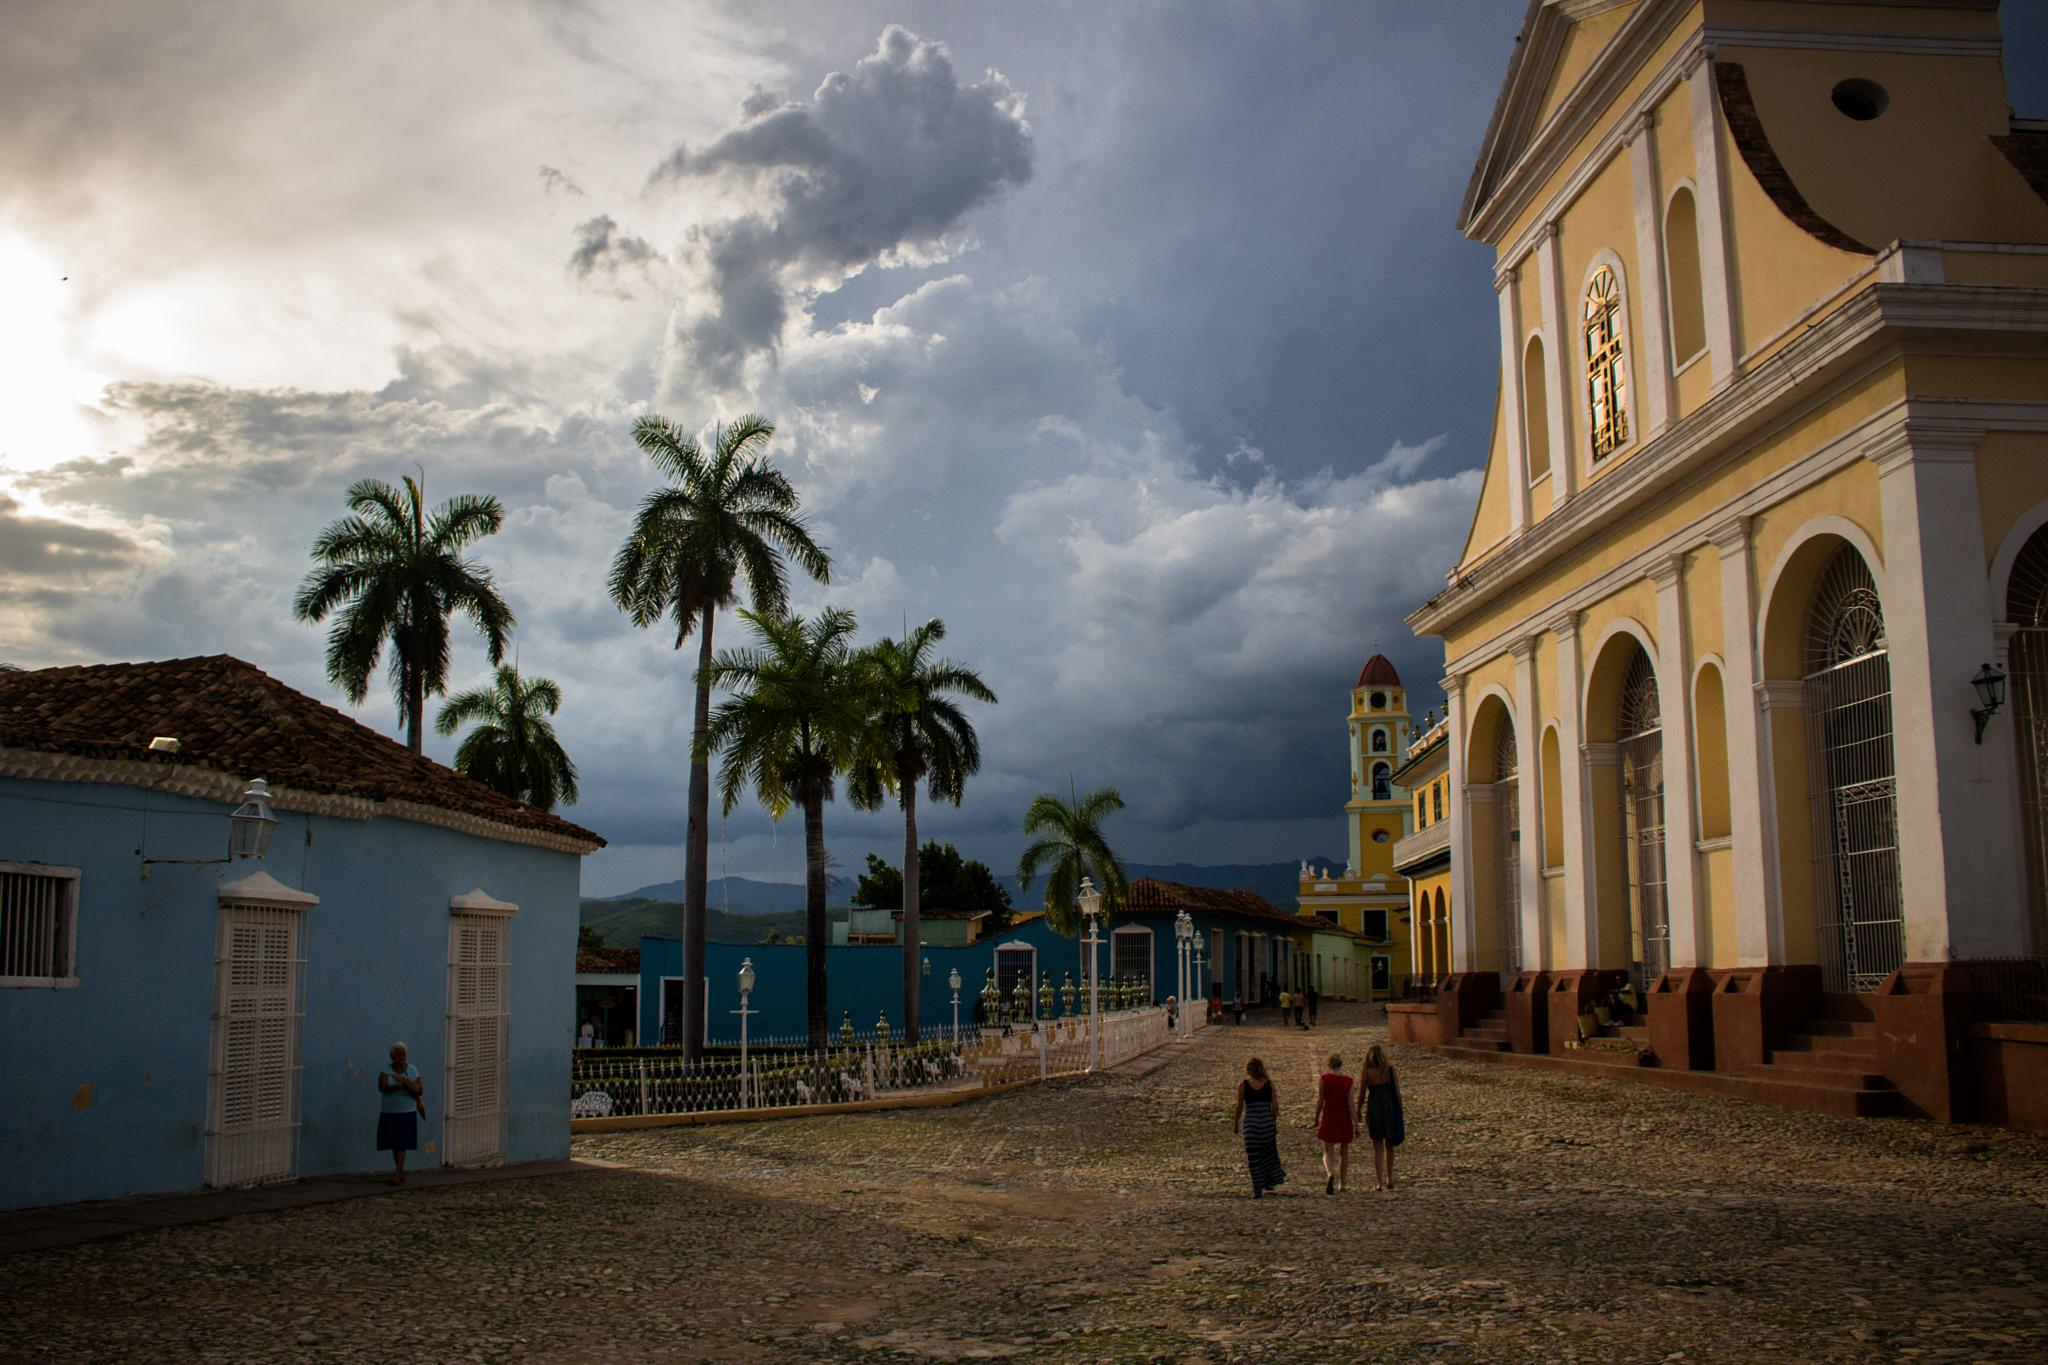 Sunset in Cuba by GAre5